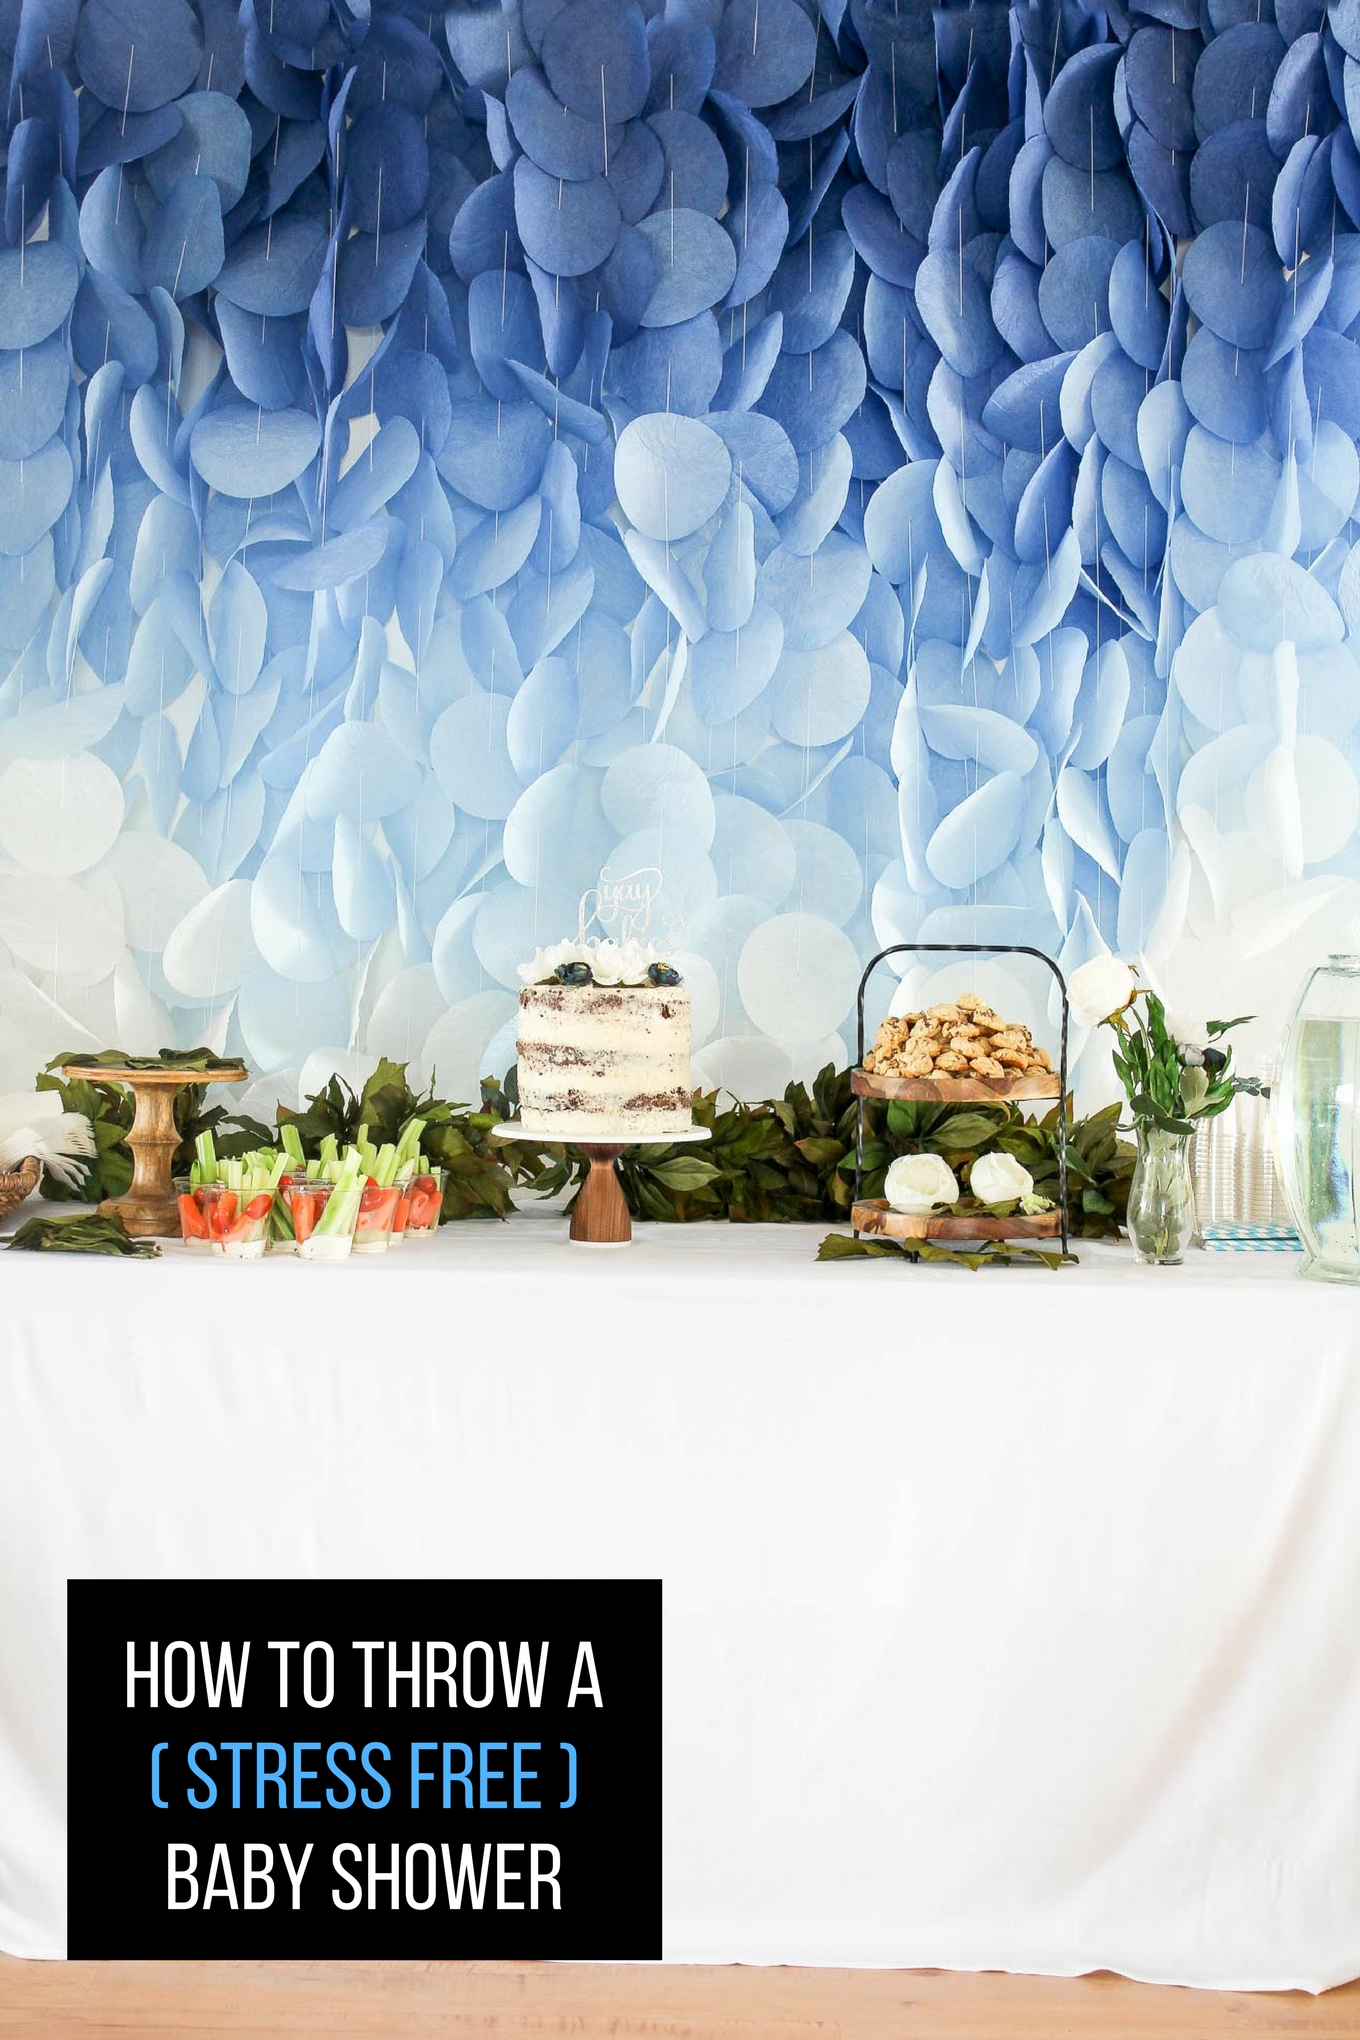 how to throw a stress free baby shower tips and ideas on how to be